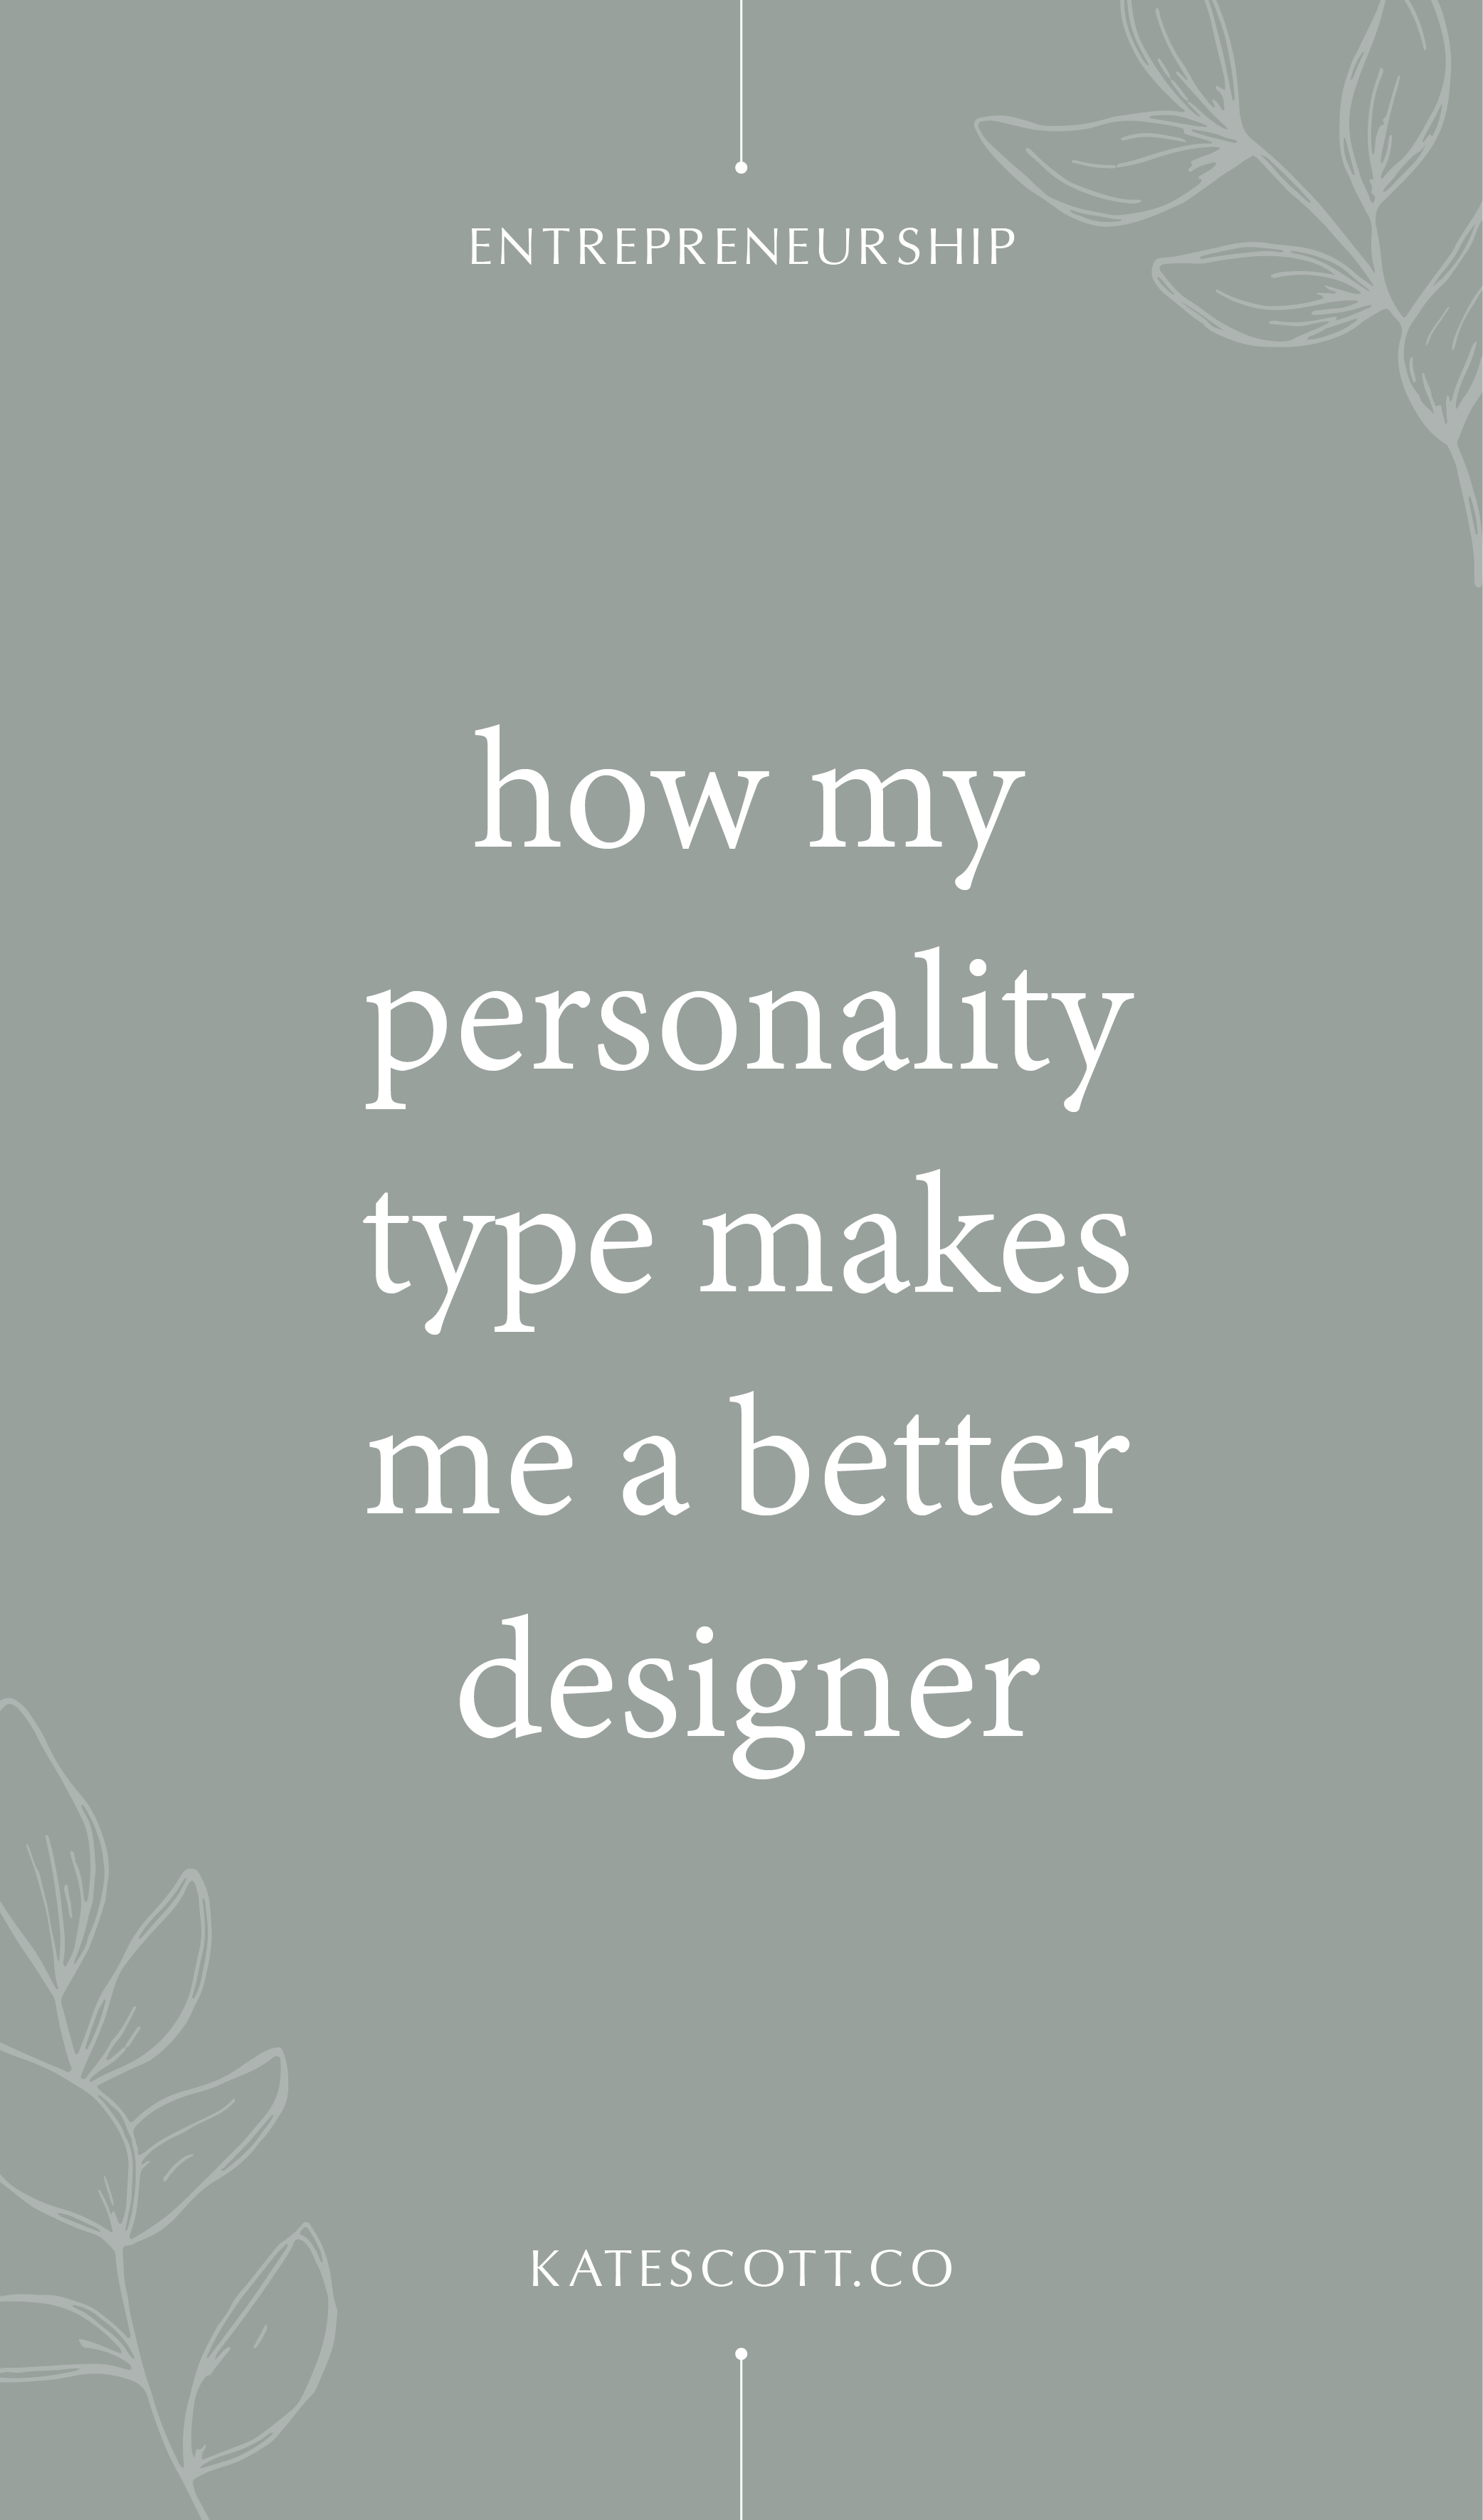 Knowing your Myers-Briggs and Enneagram personality types can help you identify your strengths and build a fulfilling career. Here's how my personality type makes me a better Squarespace designer. | Web Designer Website | Squarespace Designer Website | Myers Briggs Personality Types | Enneagram Personality Types